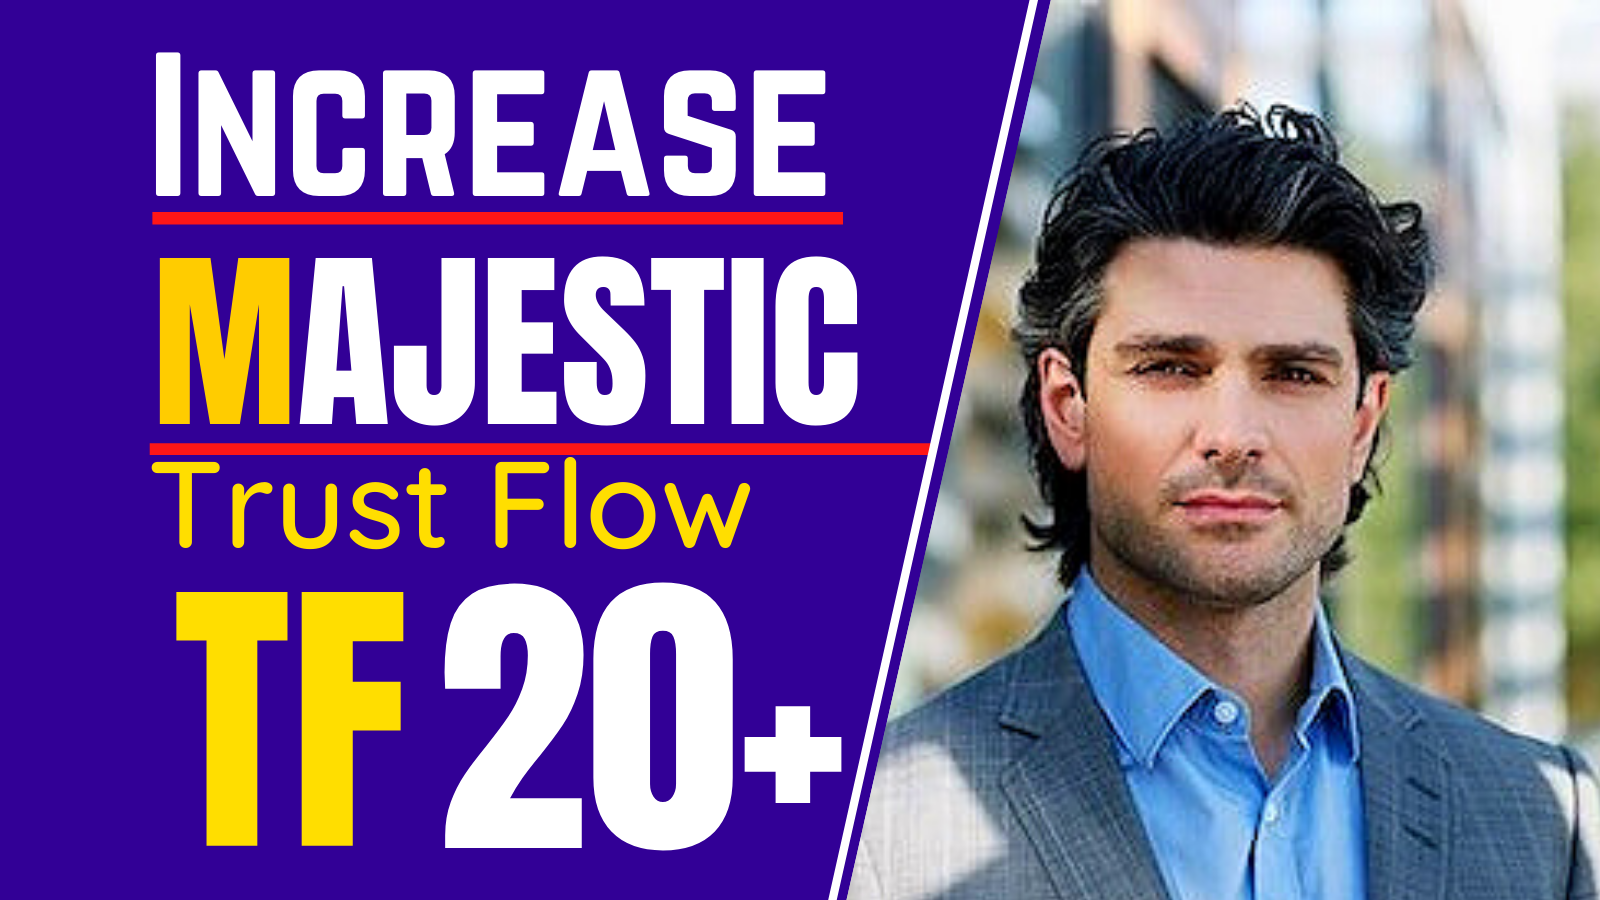 I will increase your majestic trust flow 20 plus,  increase tf